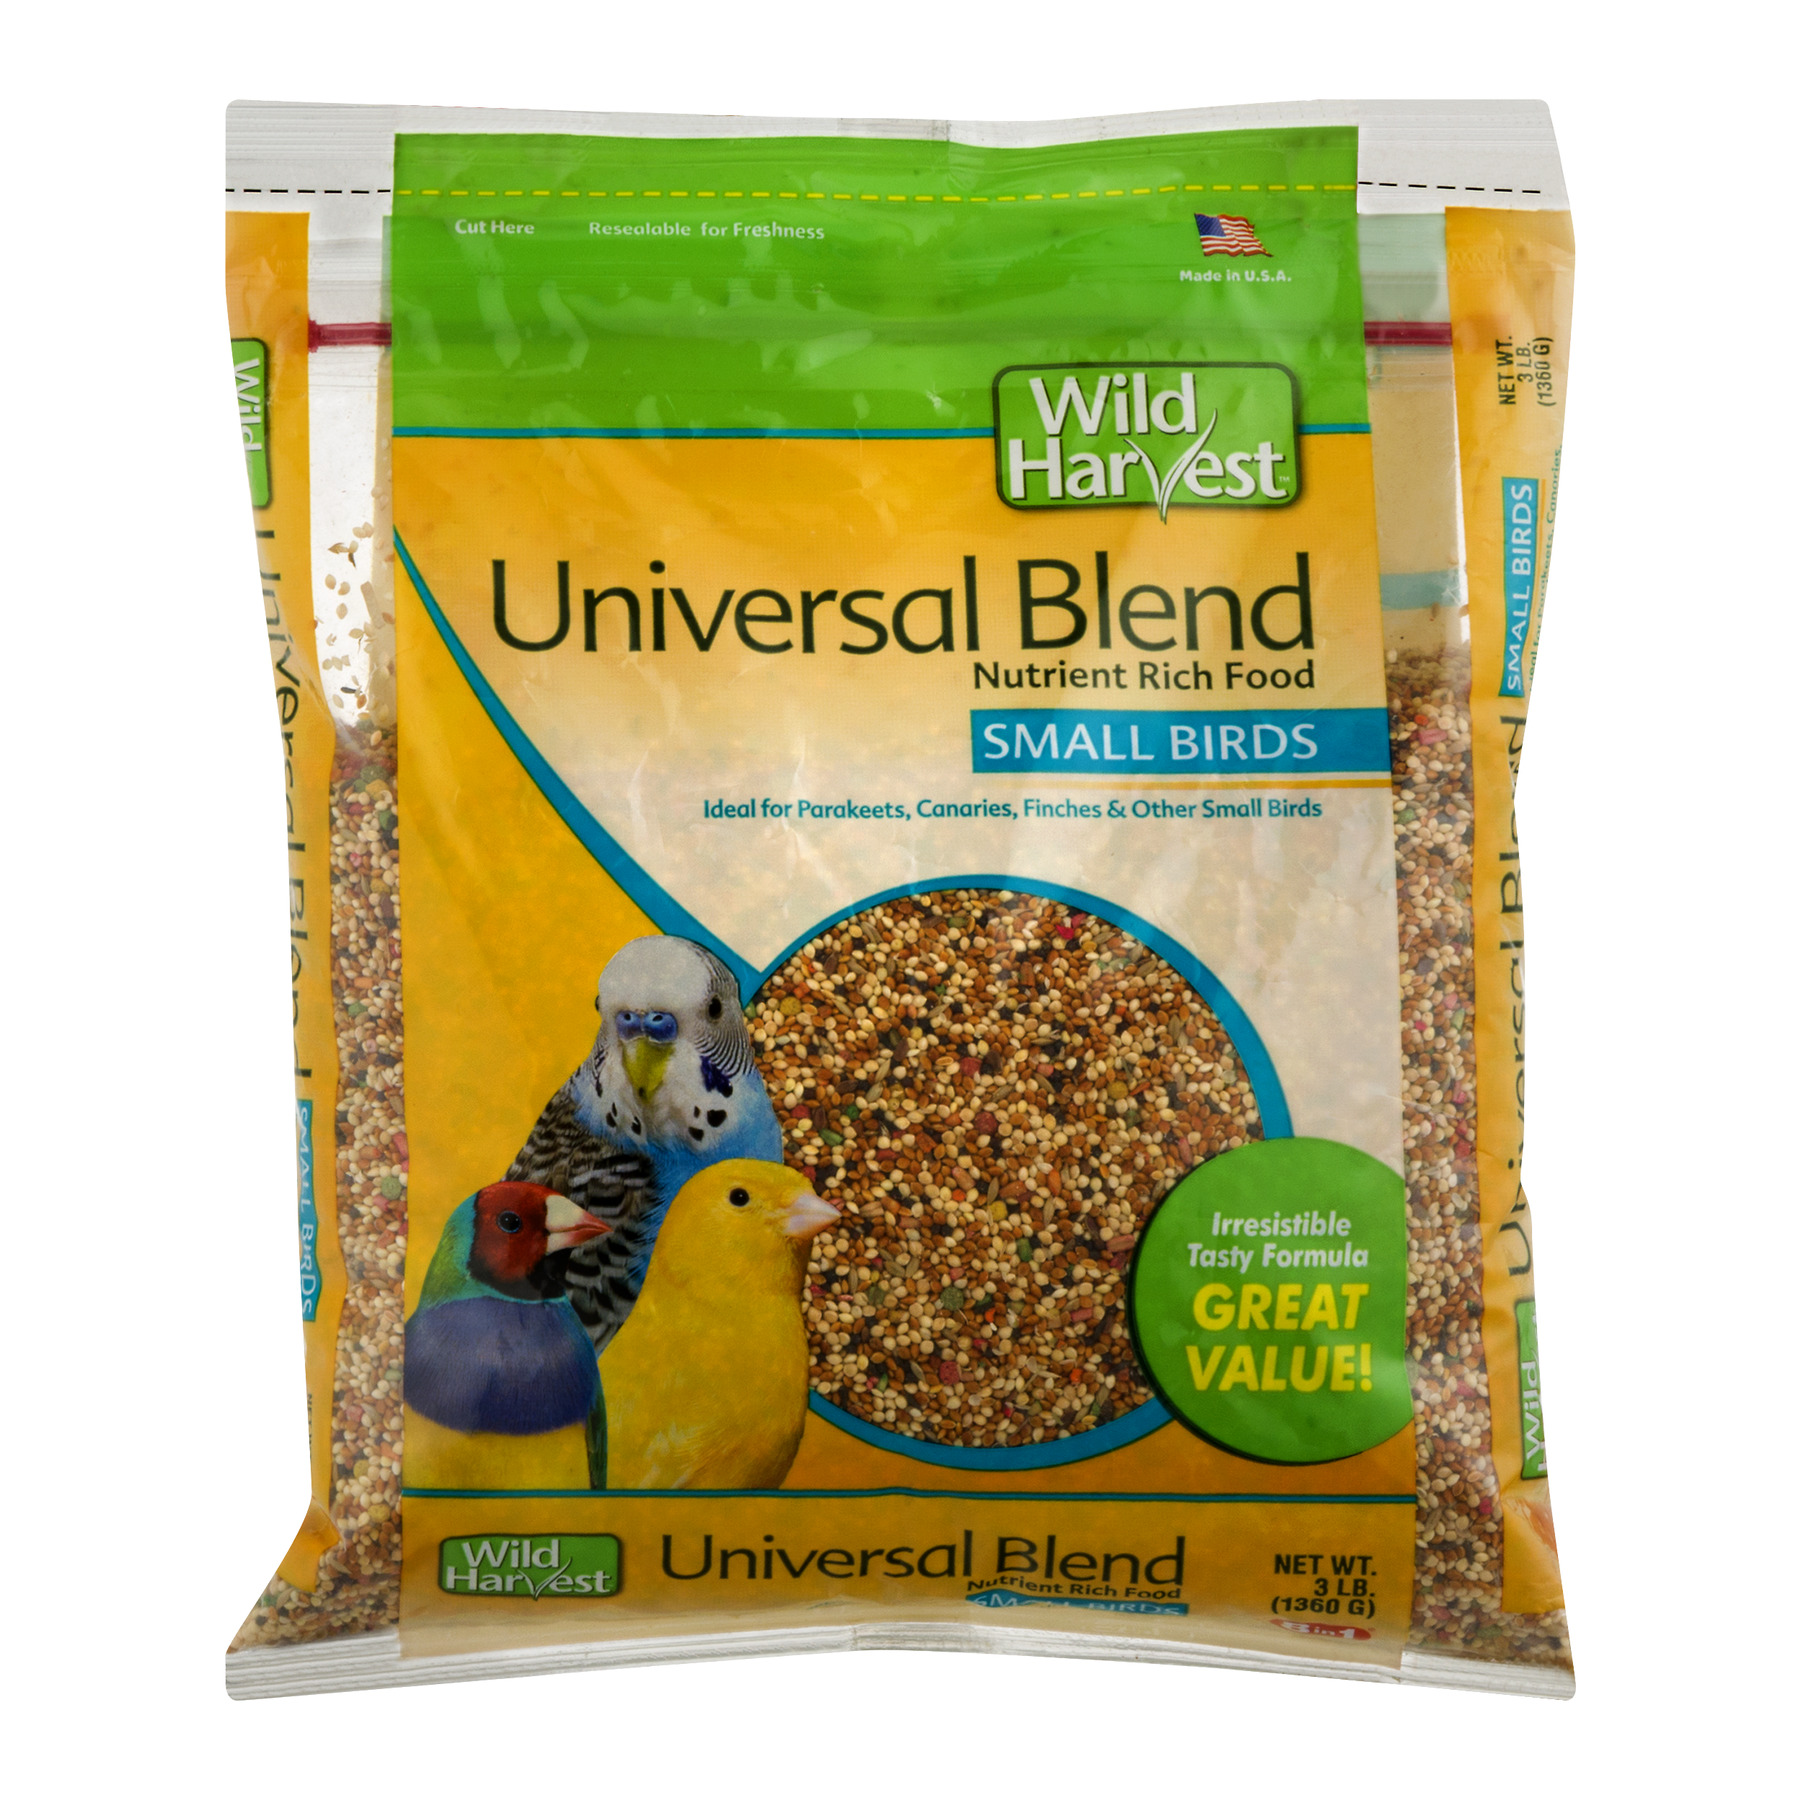 Wild Harvest Universal Blend Premium Small Birds Seed, 3 lbs